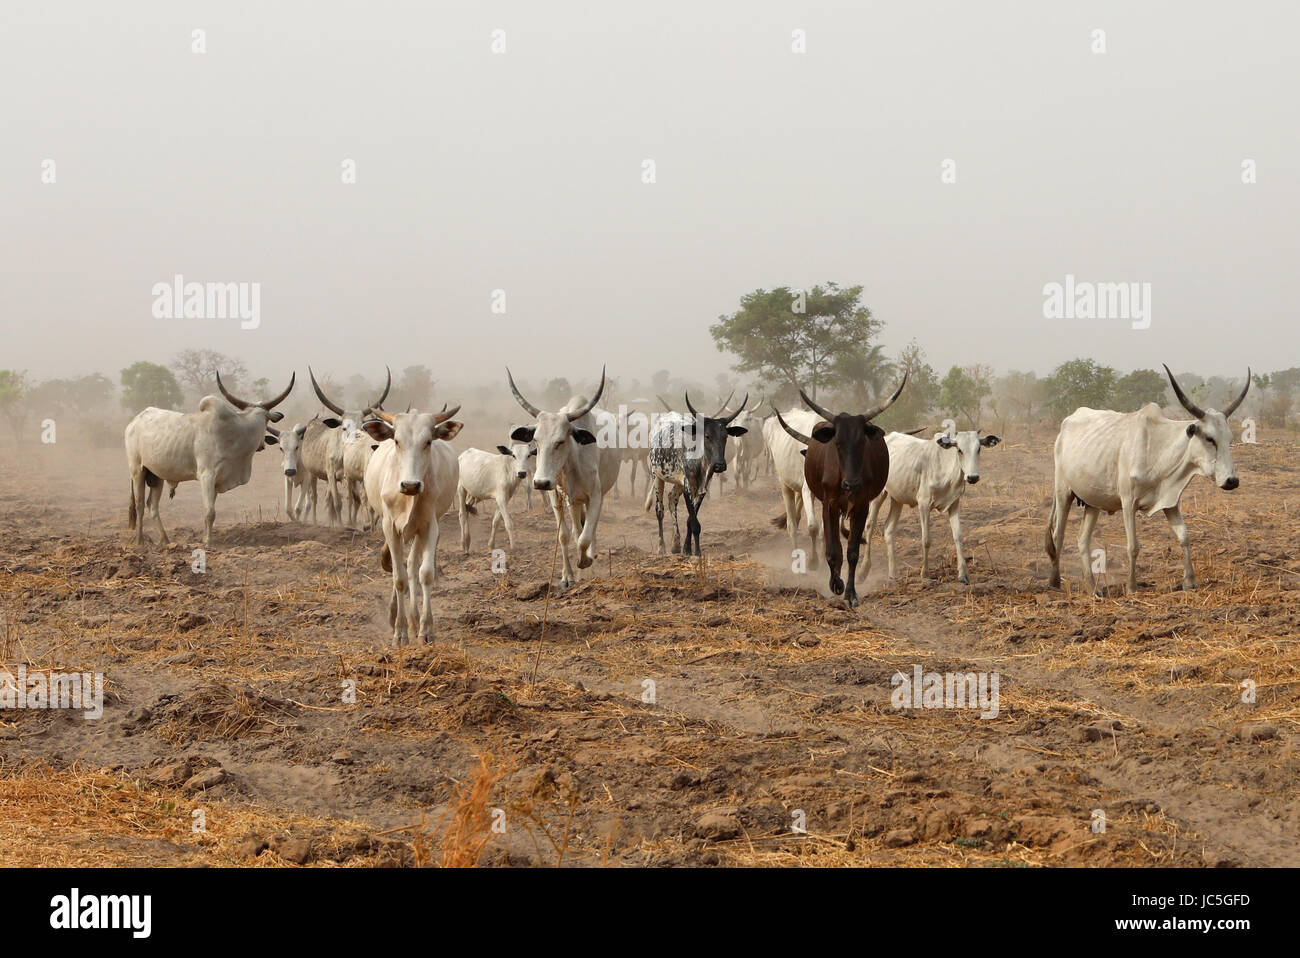 Native Cattle in Nigeria, walking in the Farm land during Harmattan Session. - Stock Image